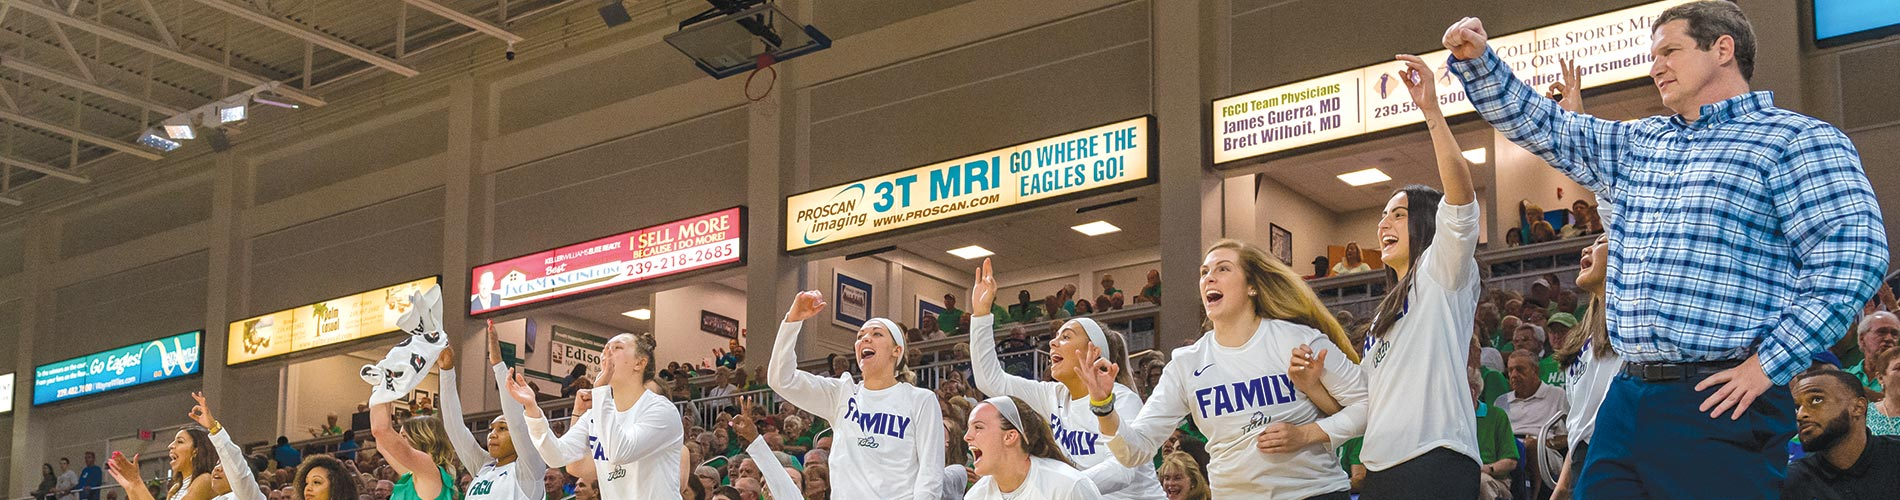 FGCU Women's Basketball